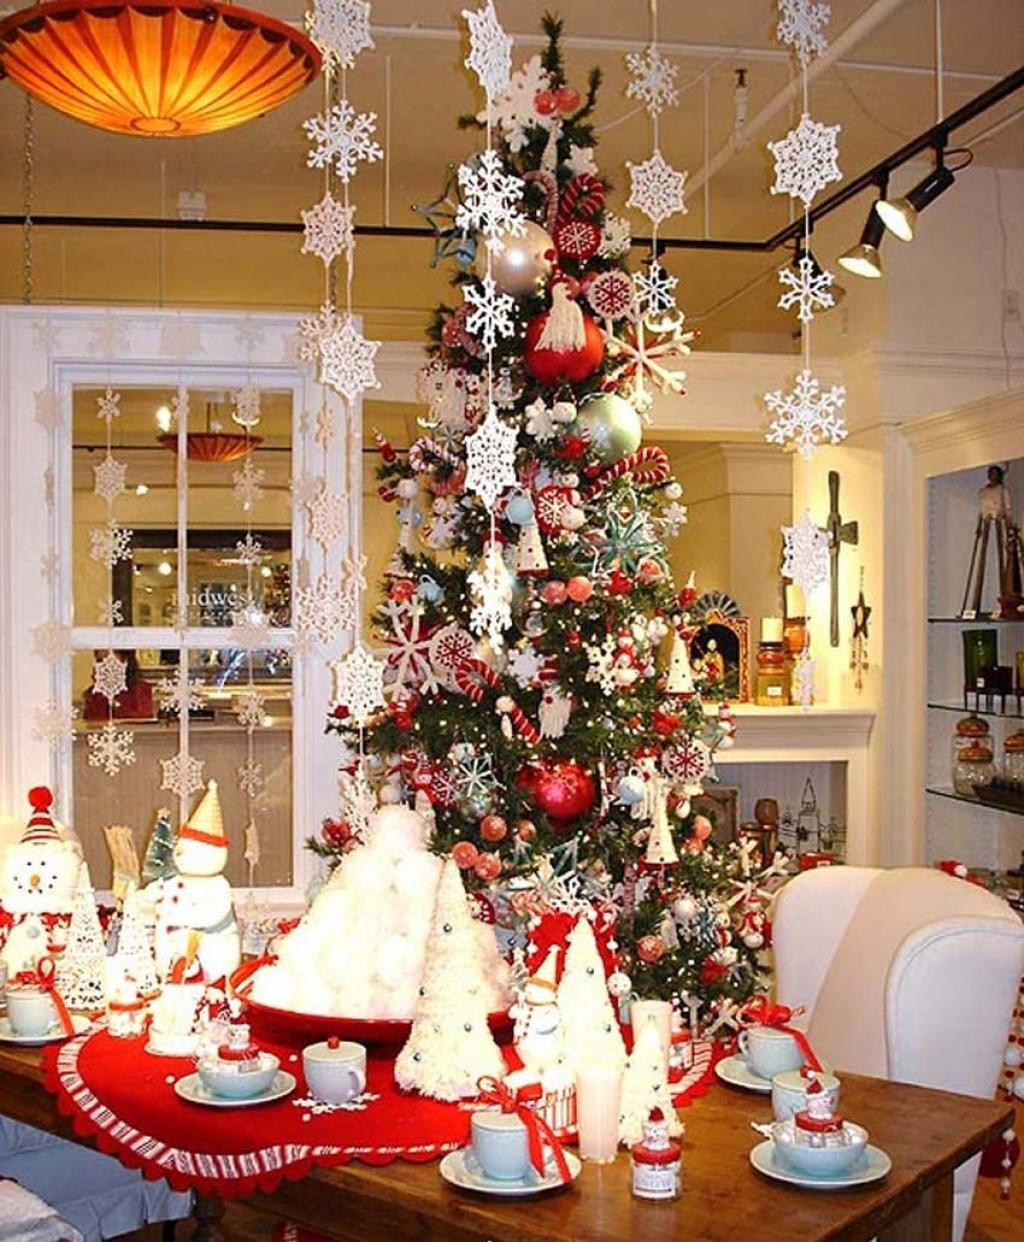 Holiday Decor Ideas Christmas: 40 Christmas Table Decors Ideas To Inspire Your Pinterest